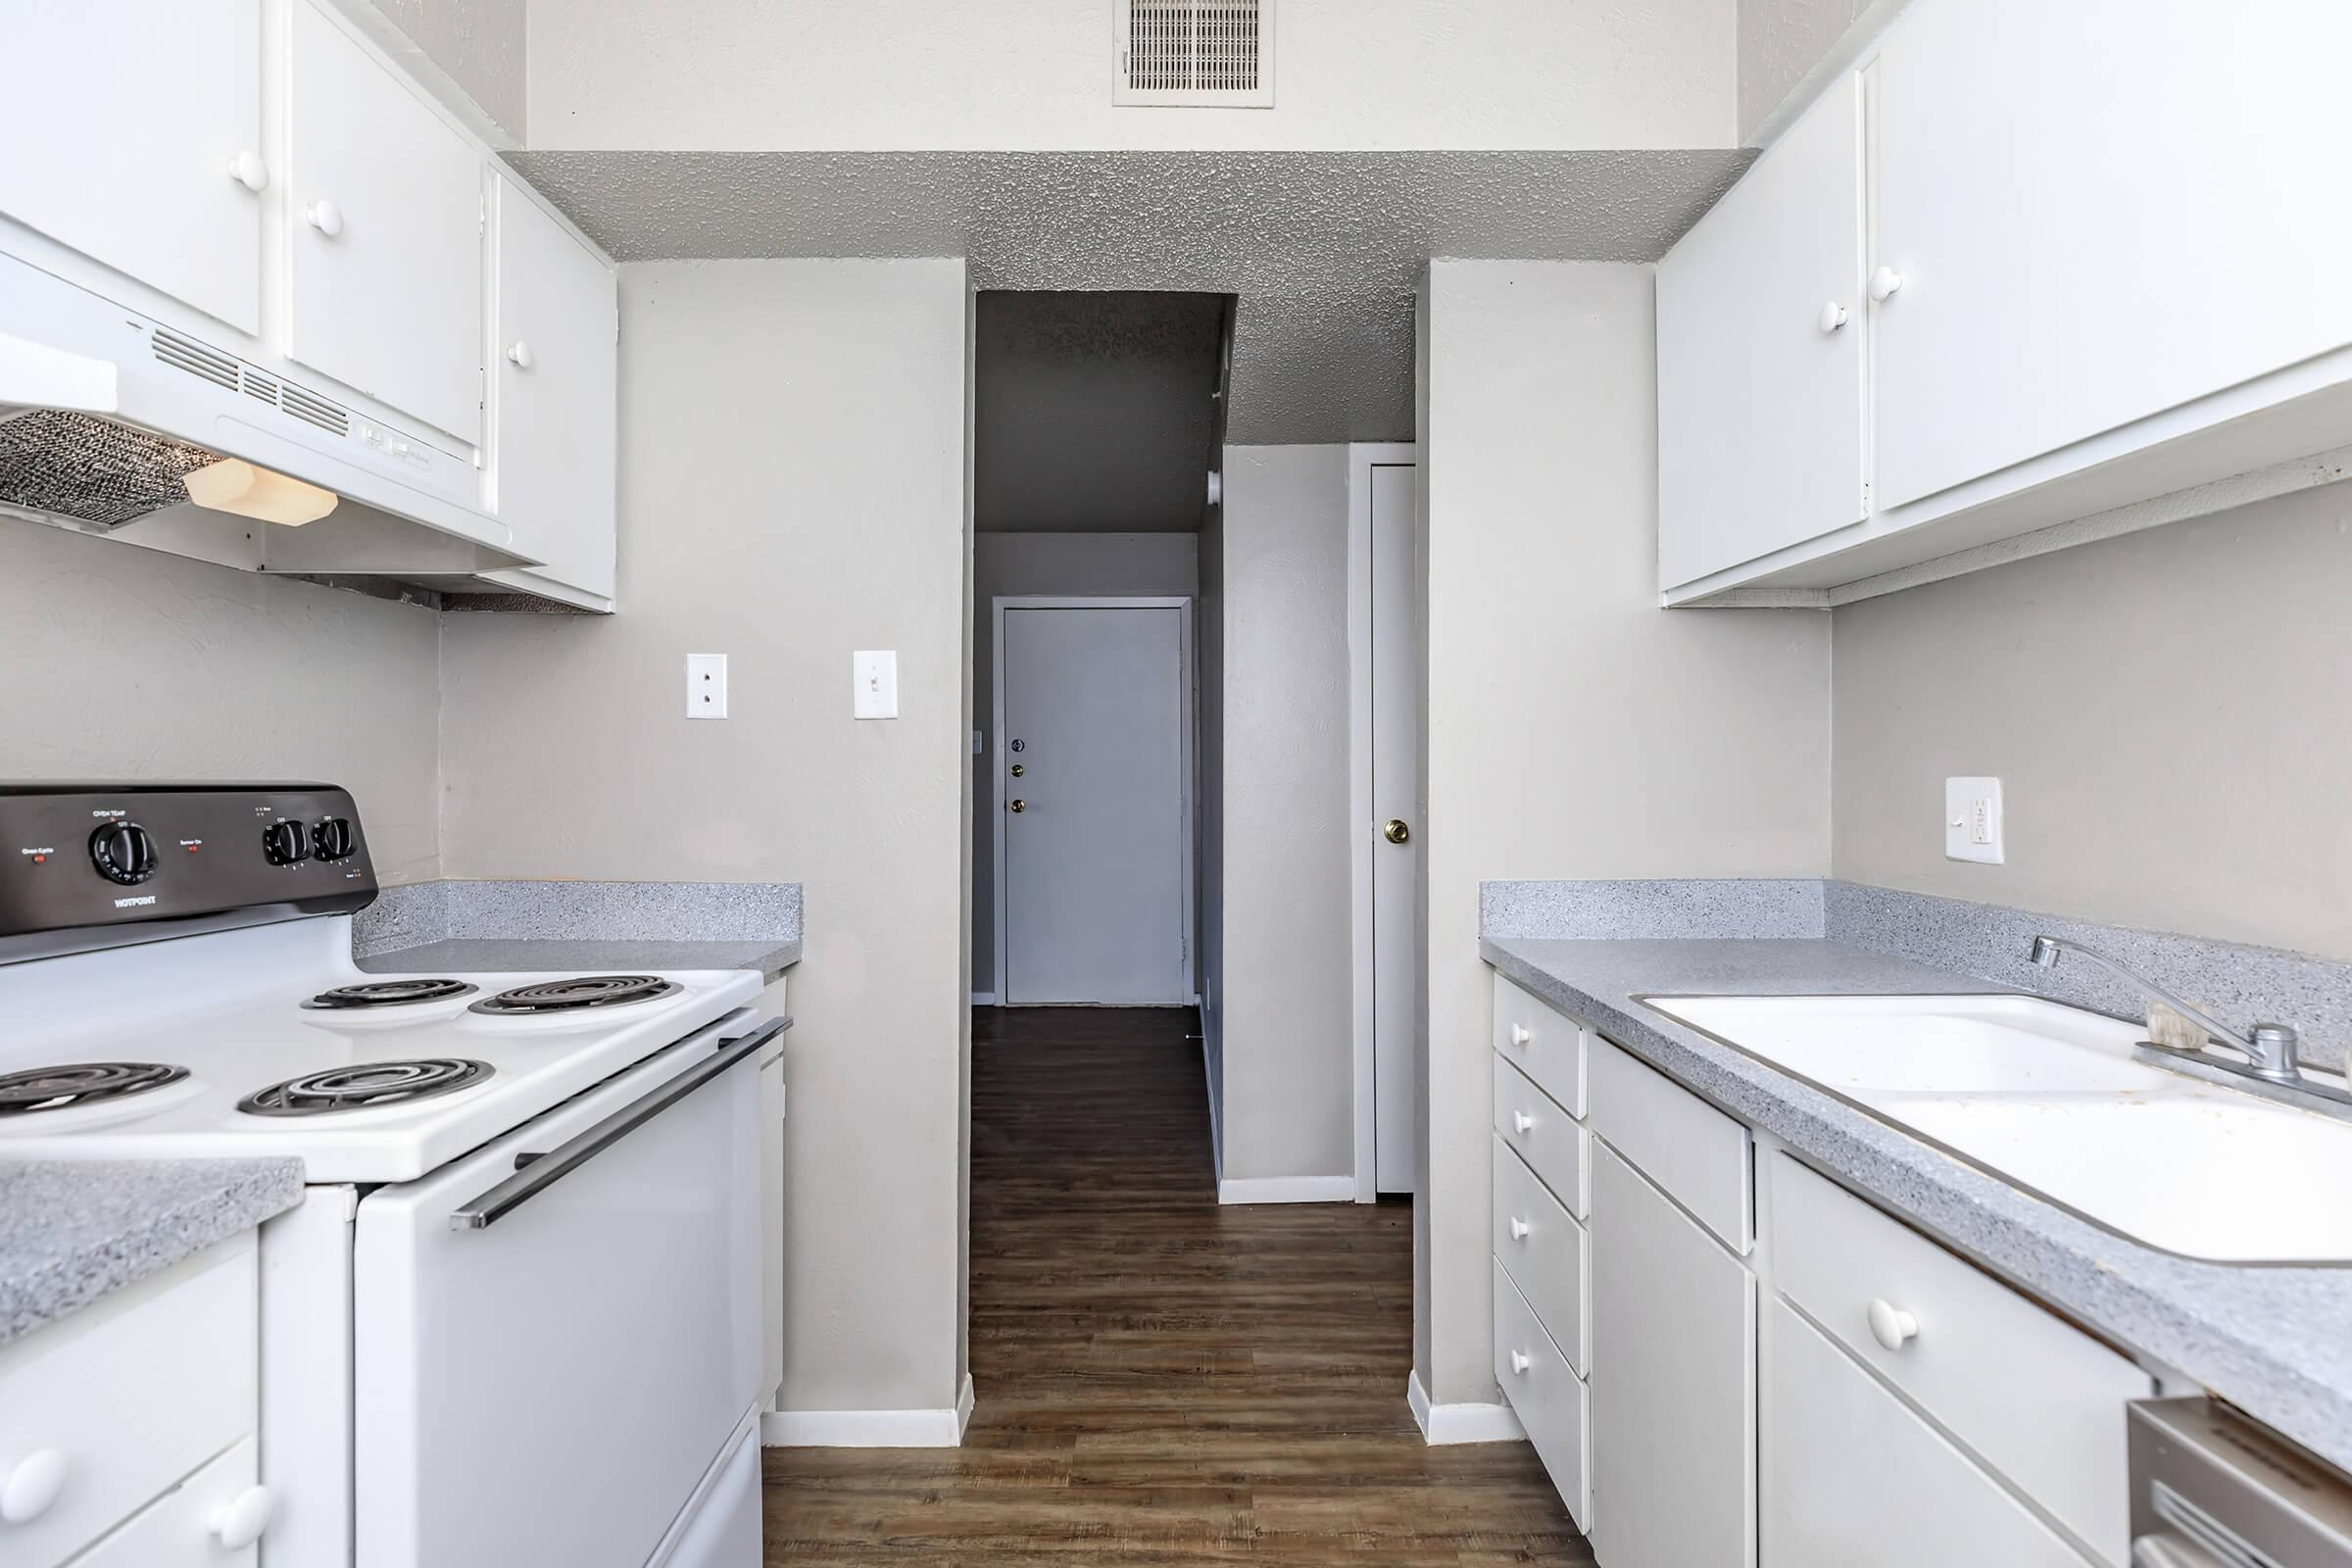 a kitchen with a sink and a stove top oven